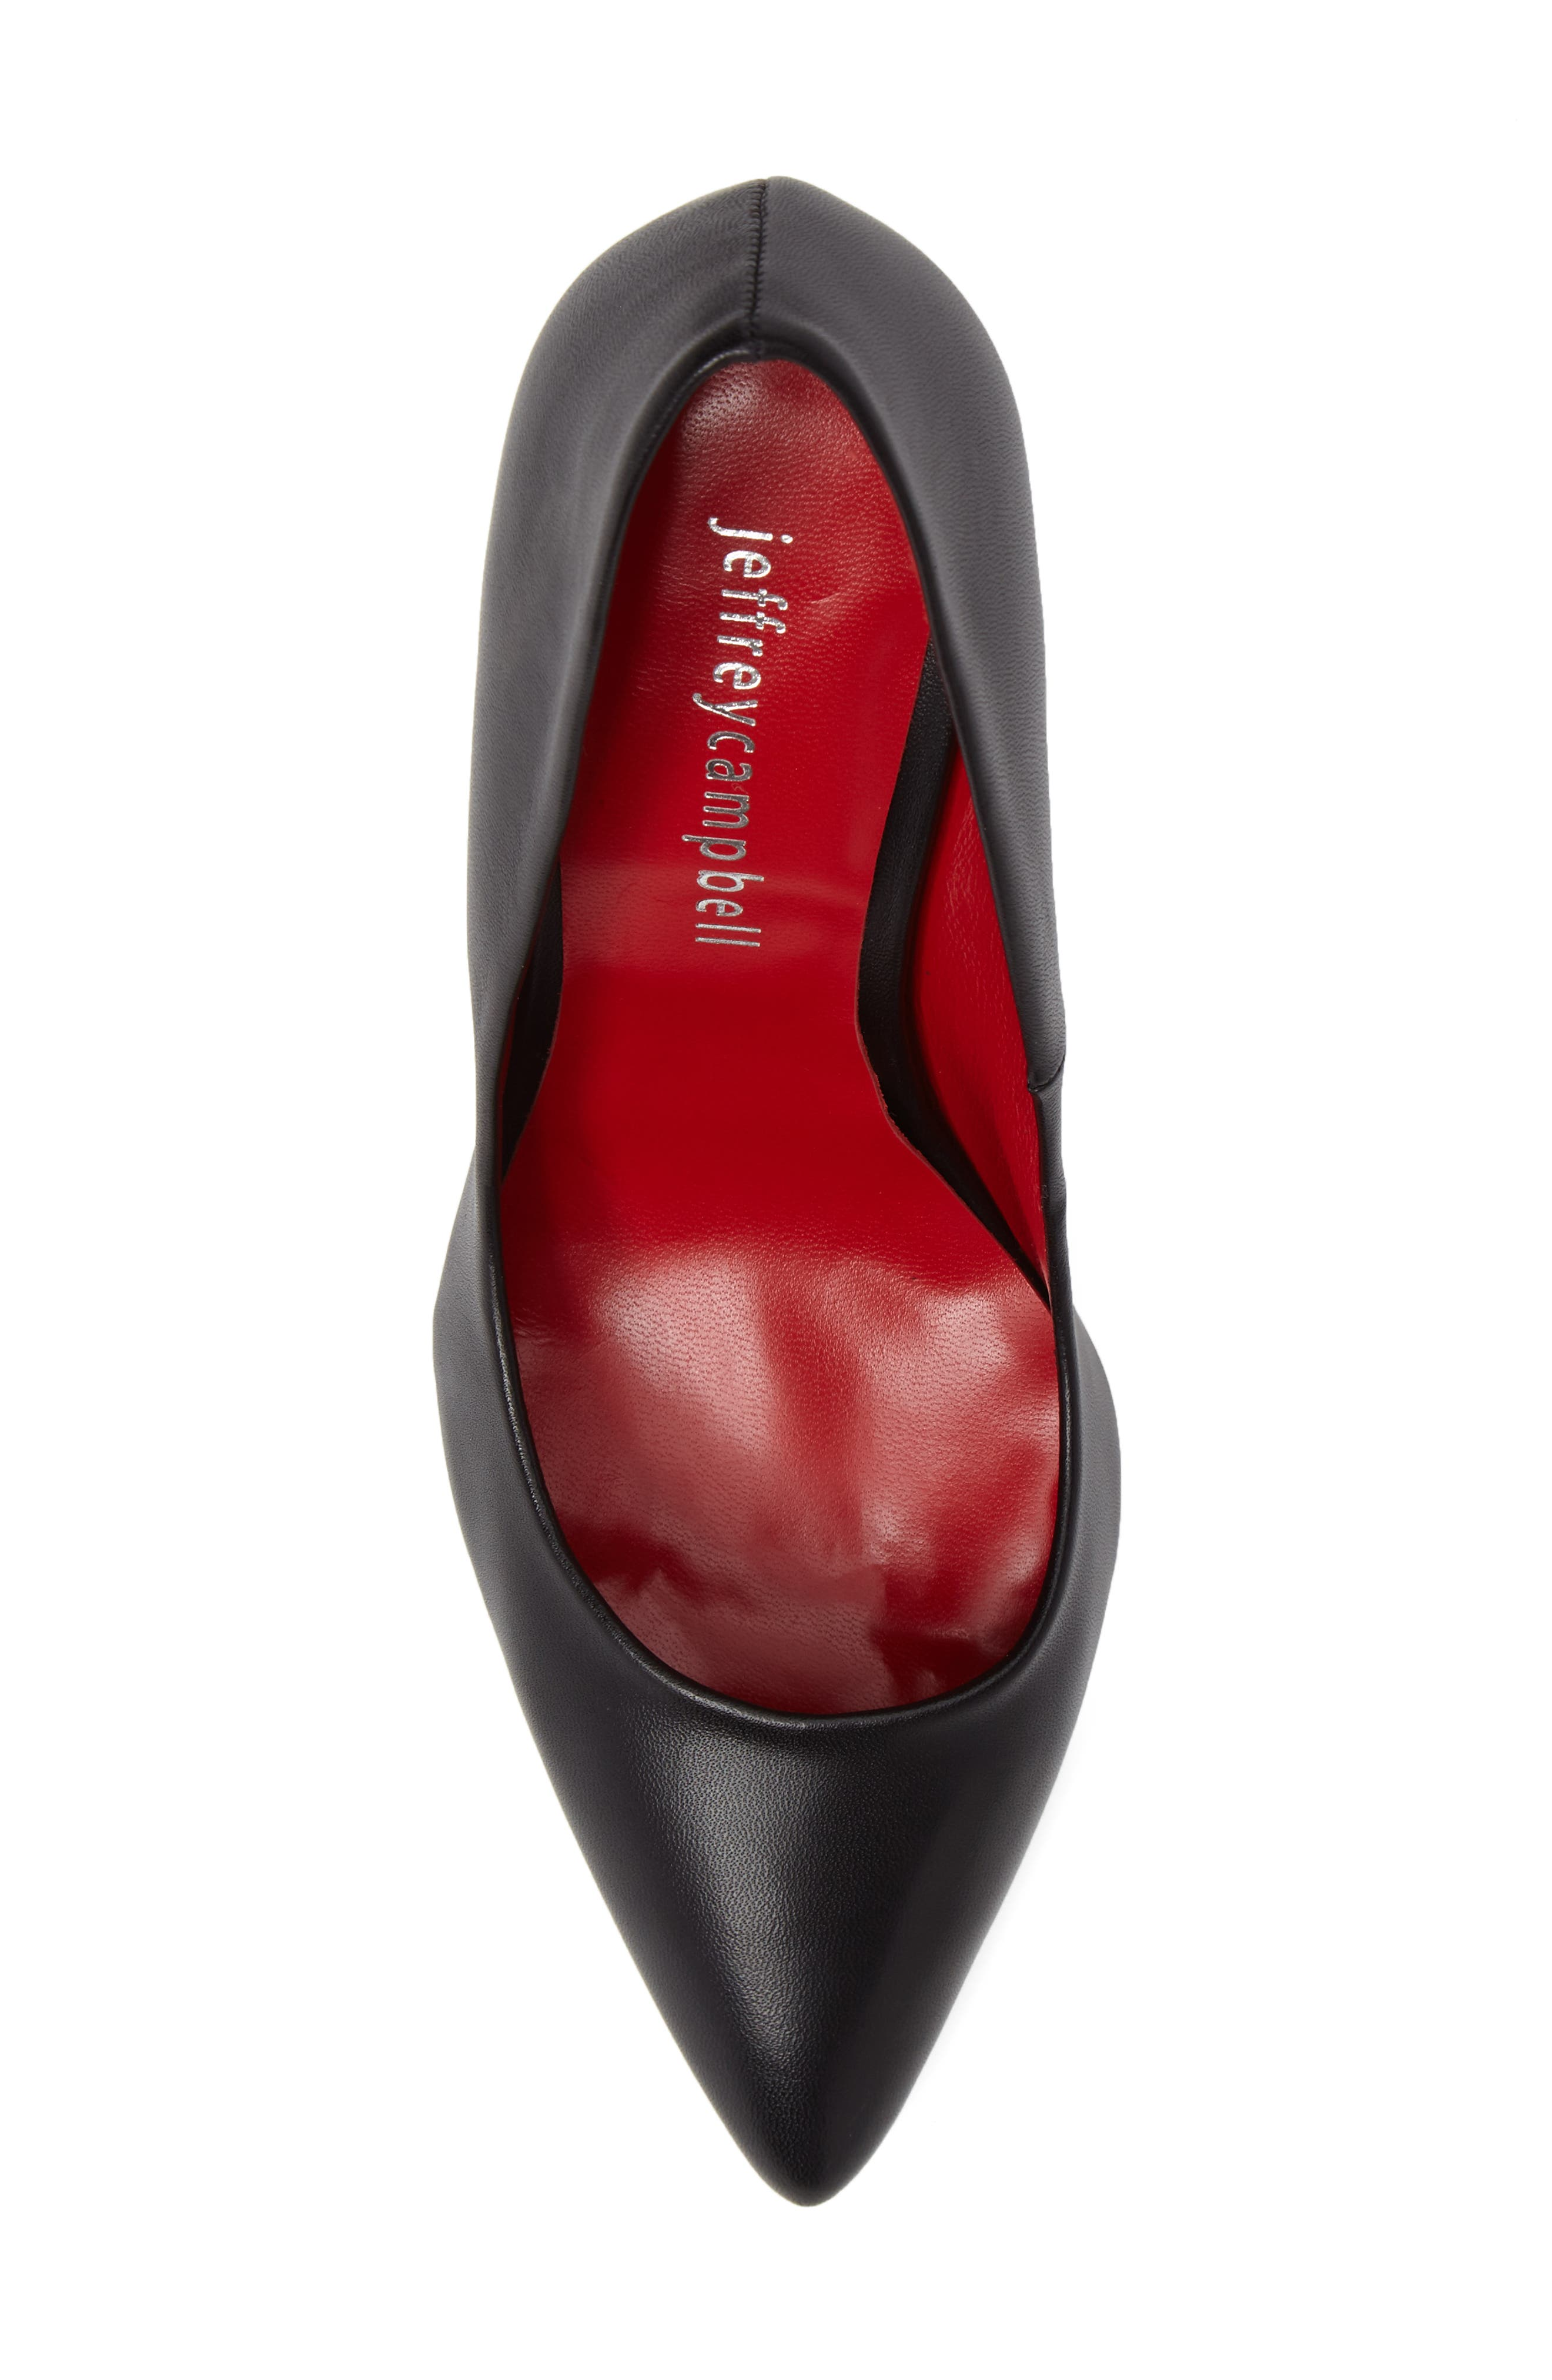 Sachi Pointy Toe Pump,                             Alternate thumbnail 5, color,                             001